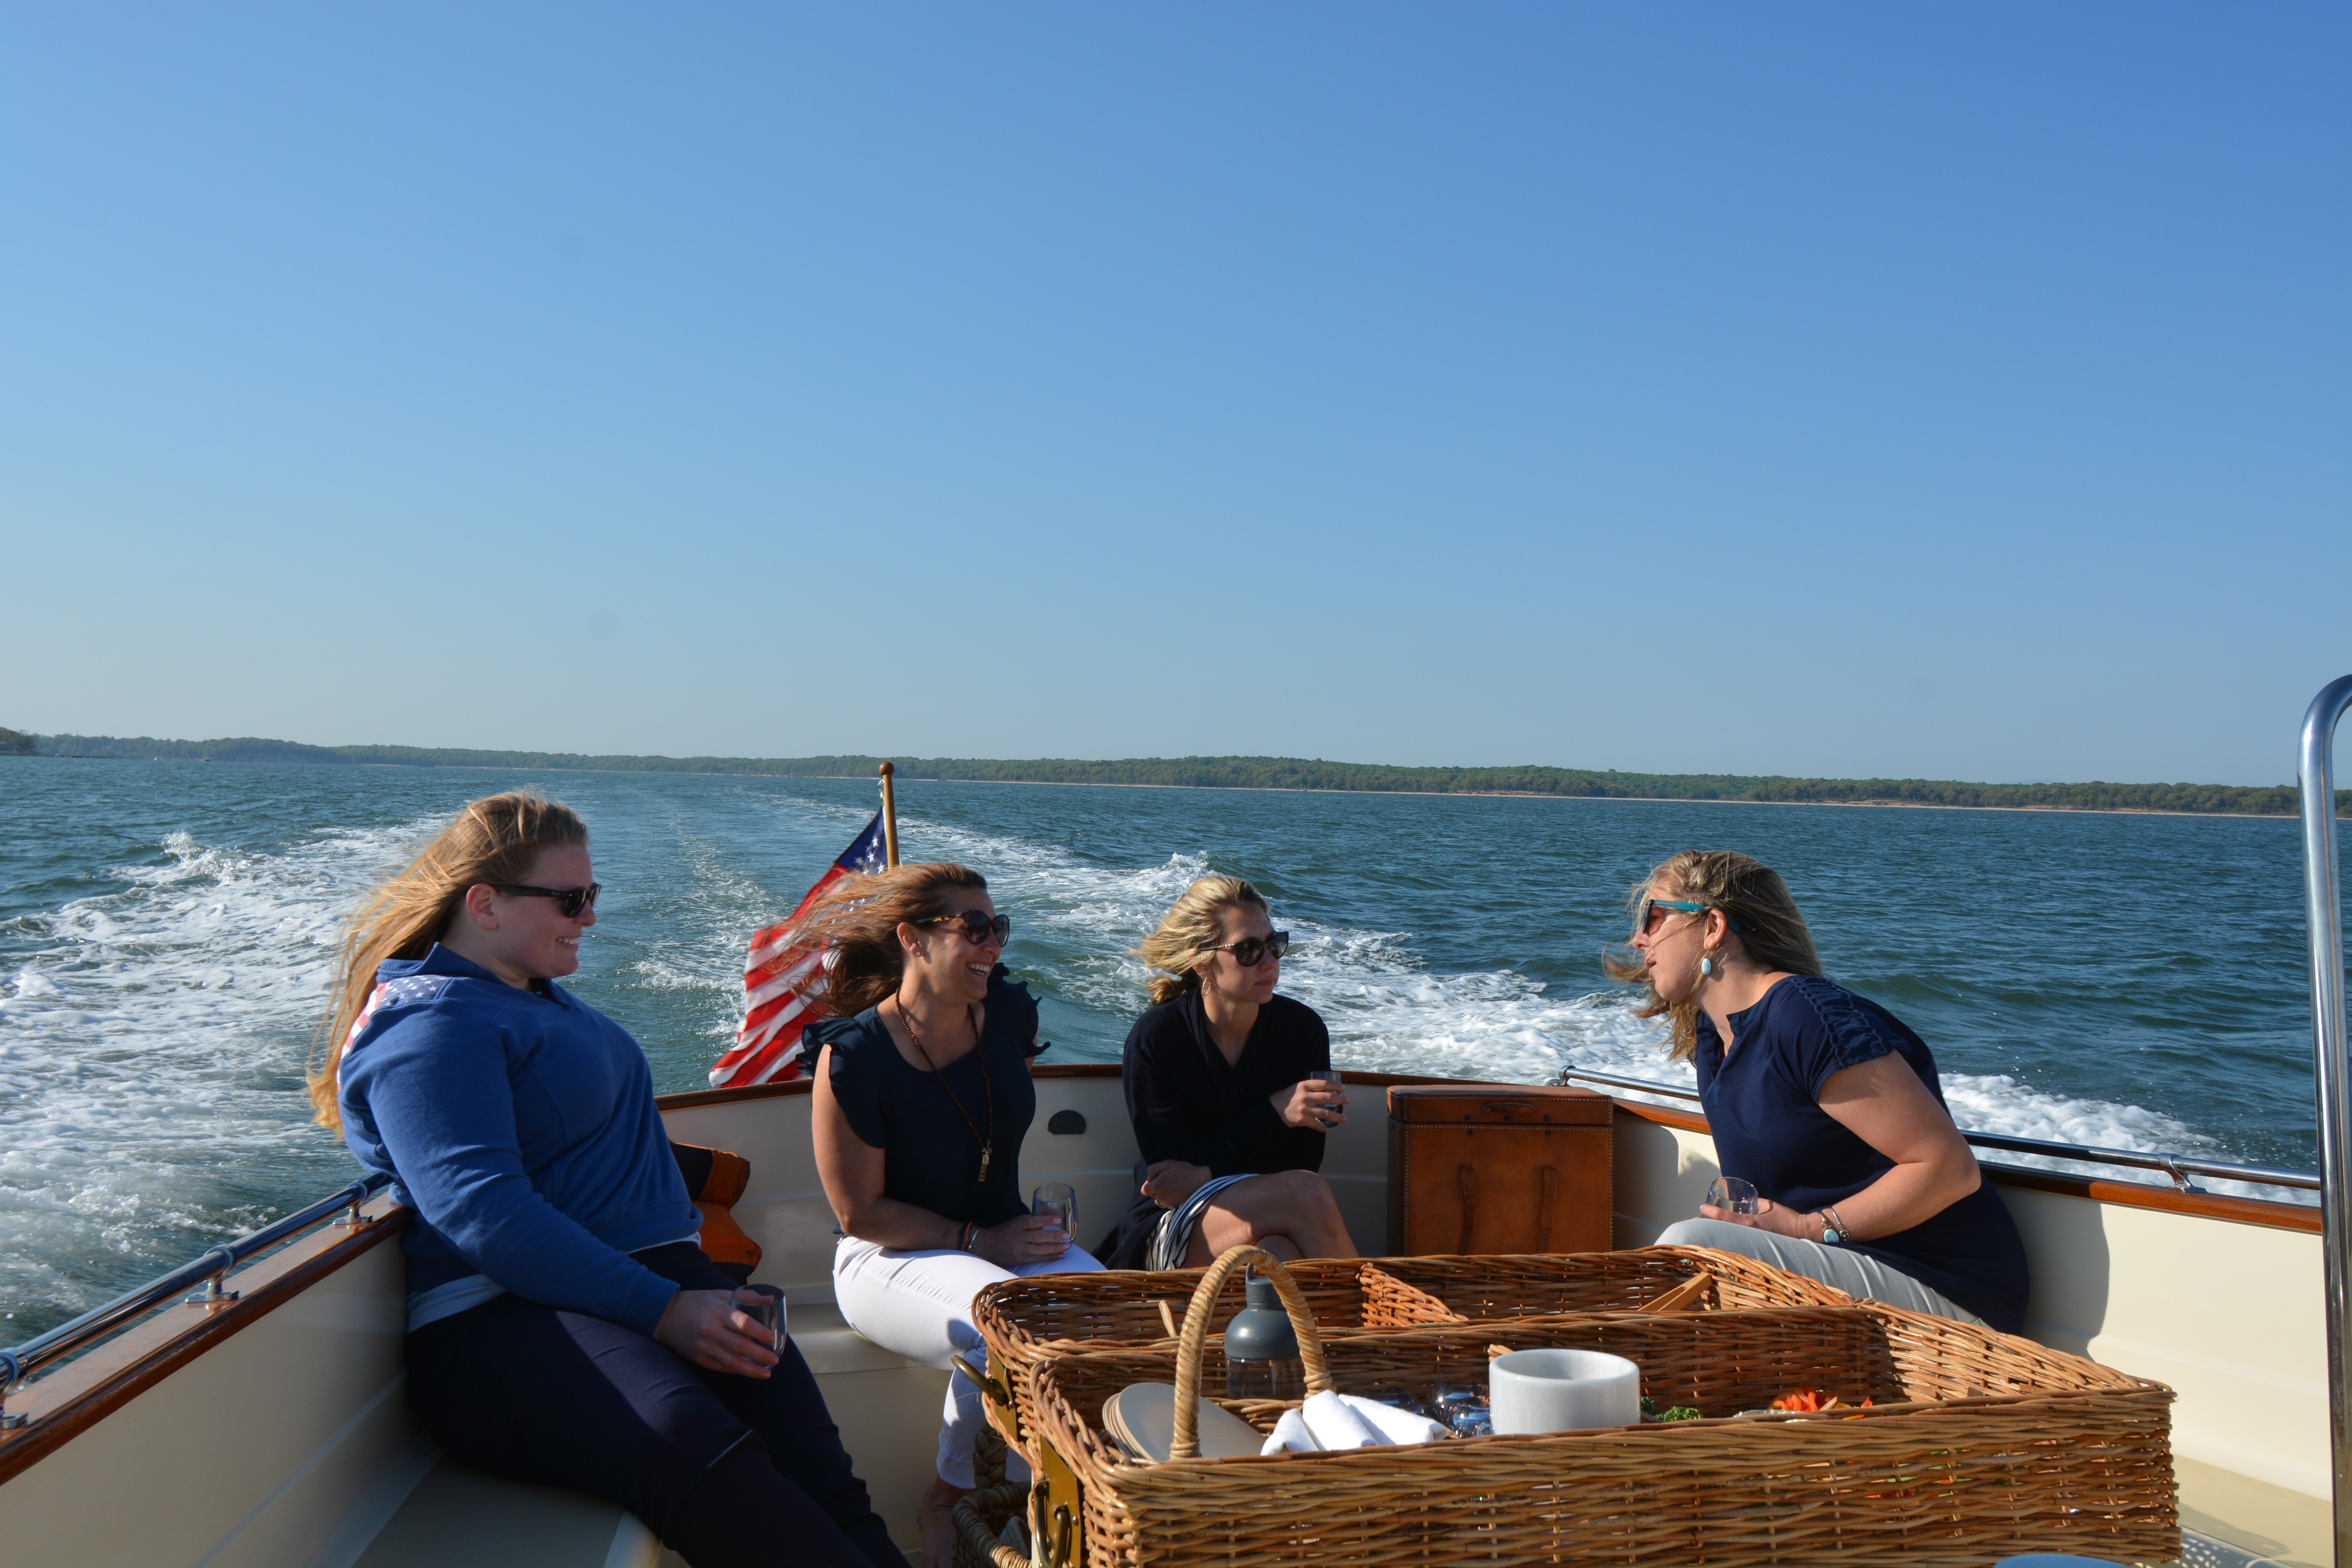 Group of women enjoying a private charter to and from waterfront restaurants located in the Hamptons.